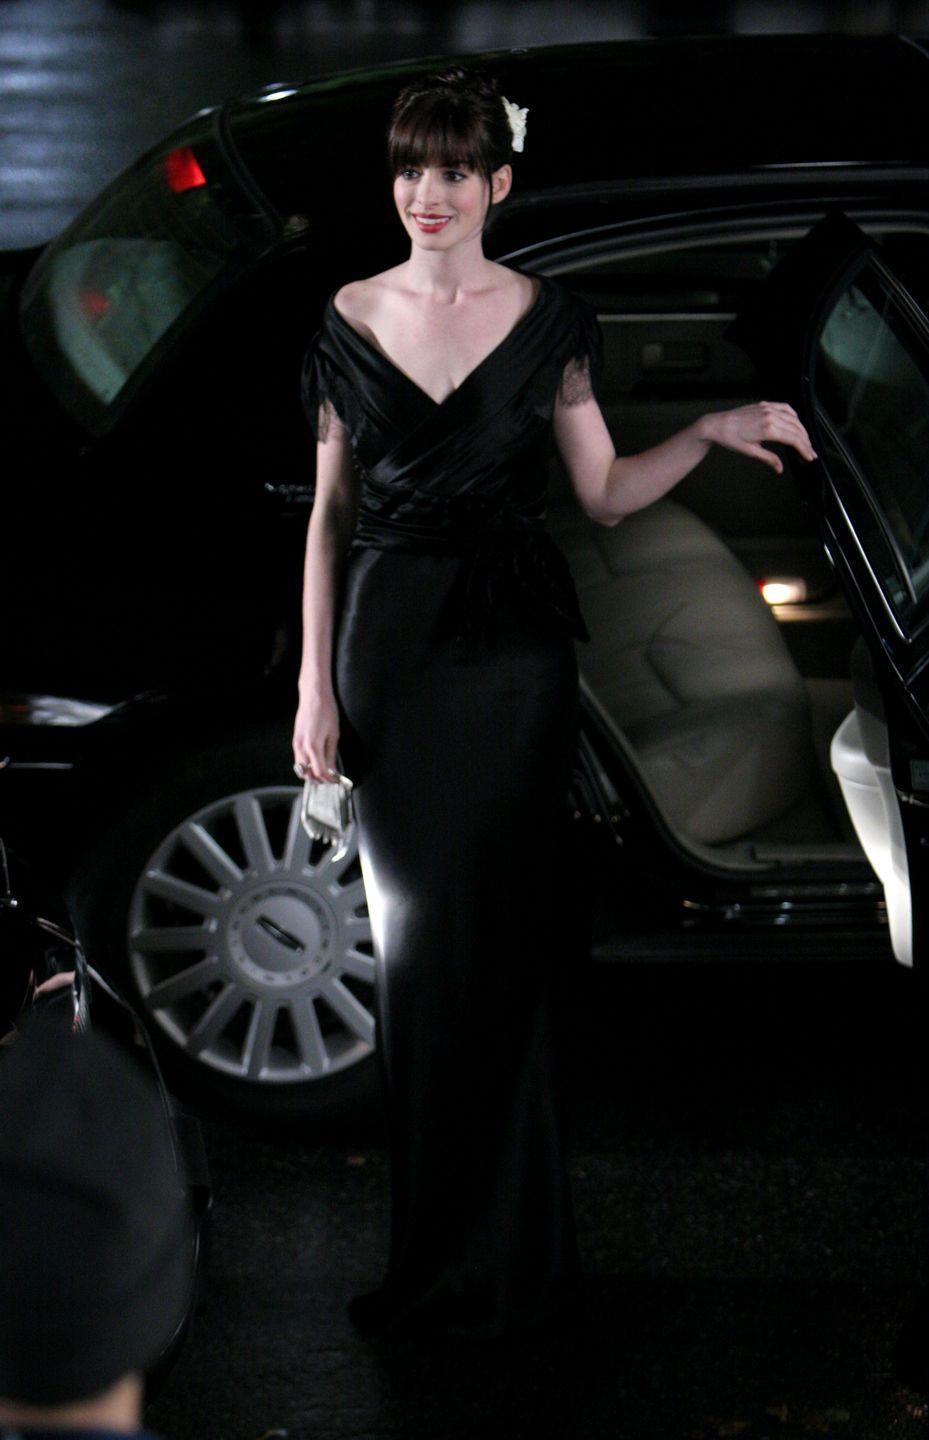 <p>Throughout <em>The Devil Wears Prada, </em>we see Andrea Sachs transition from anti-fashion to the bon vivant who scored a pair of the new Chanel boots. But the outfit that stood out most from the movie (post-makeover, of course) is the black silk Valentino gown she wears to <em>Runway</em>'s charity gala.  </p>